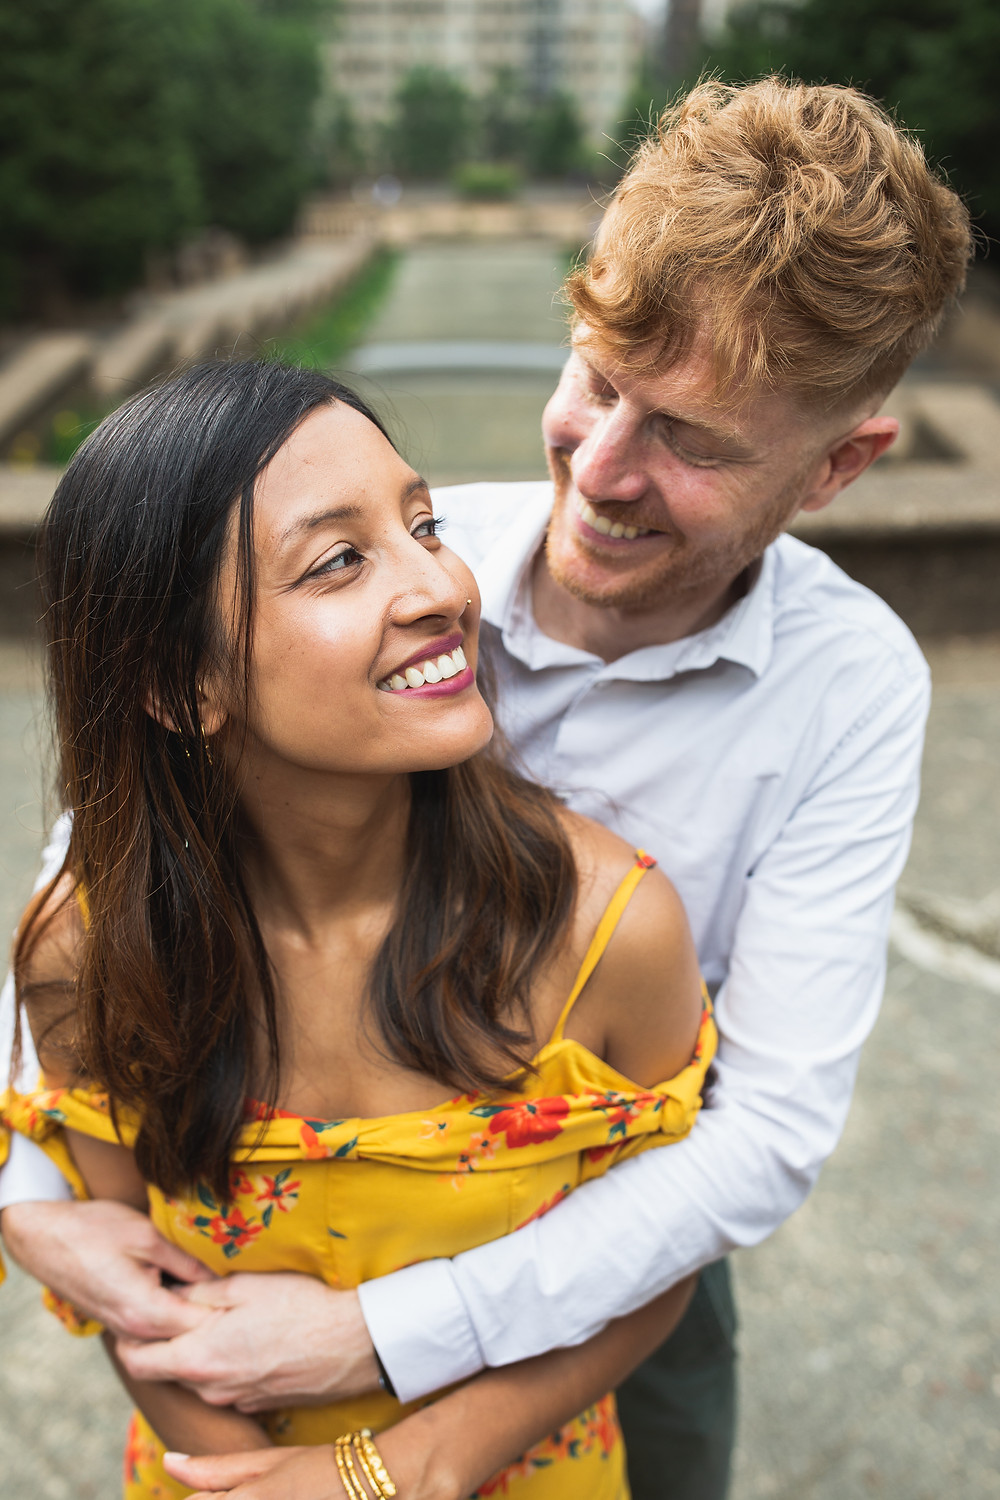 John and UK embrace each other during the engagement session at Meridian Hill Park in Washington DC.